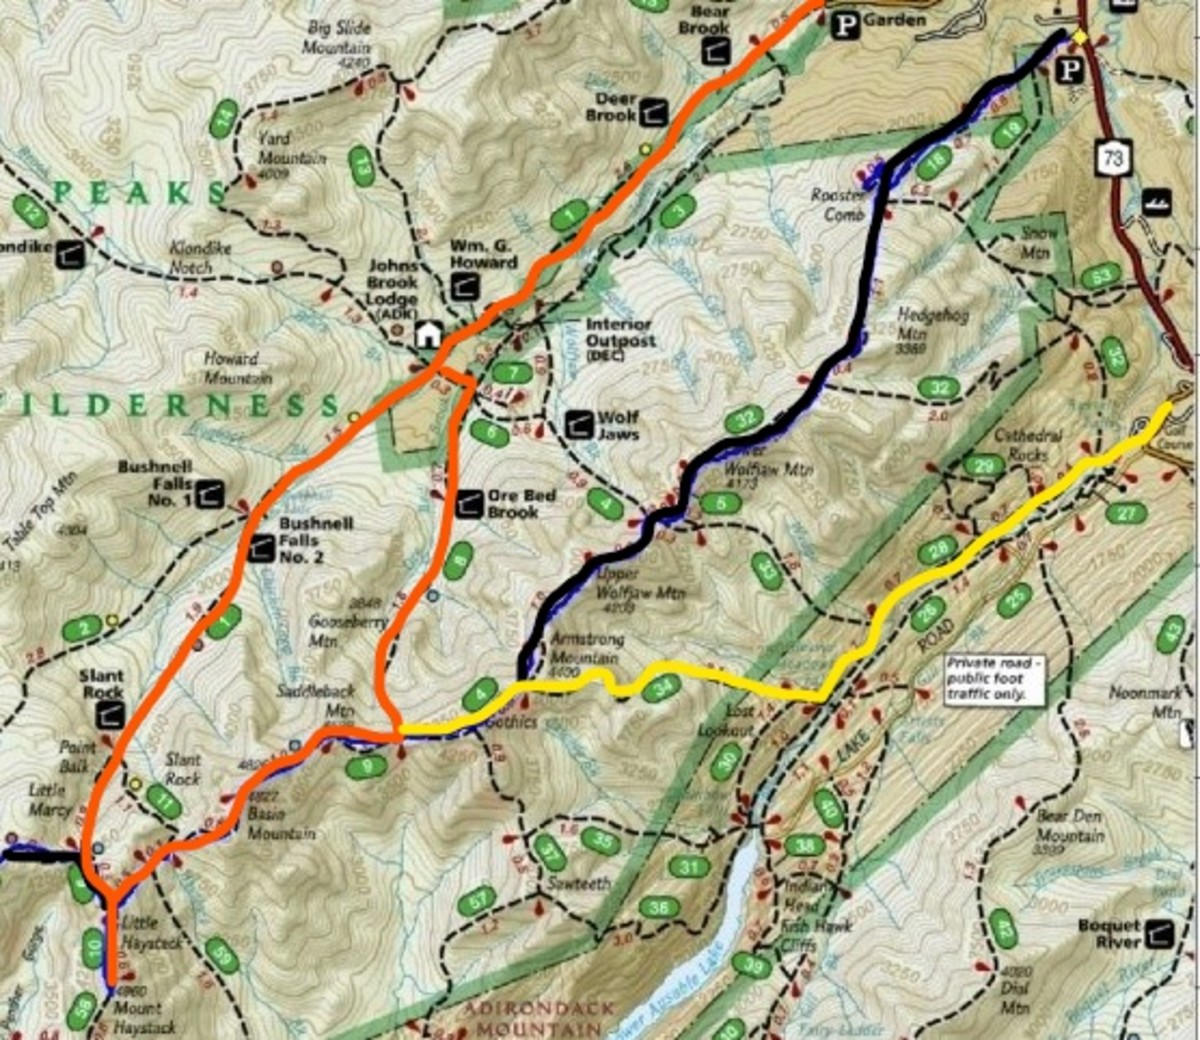 Loop back to Garden in orange, out to St. Hubert's from Saddleback in yellow, black would be the Roostercomb option